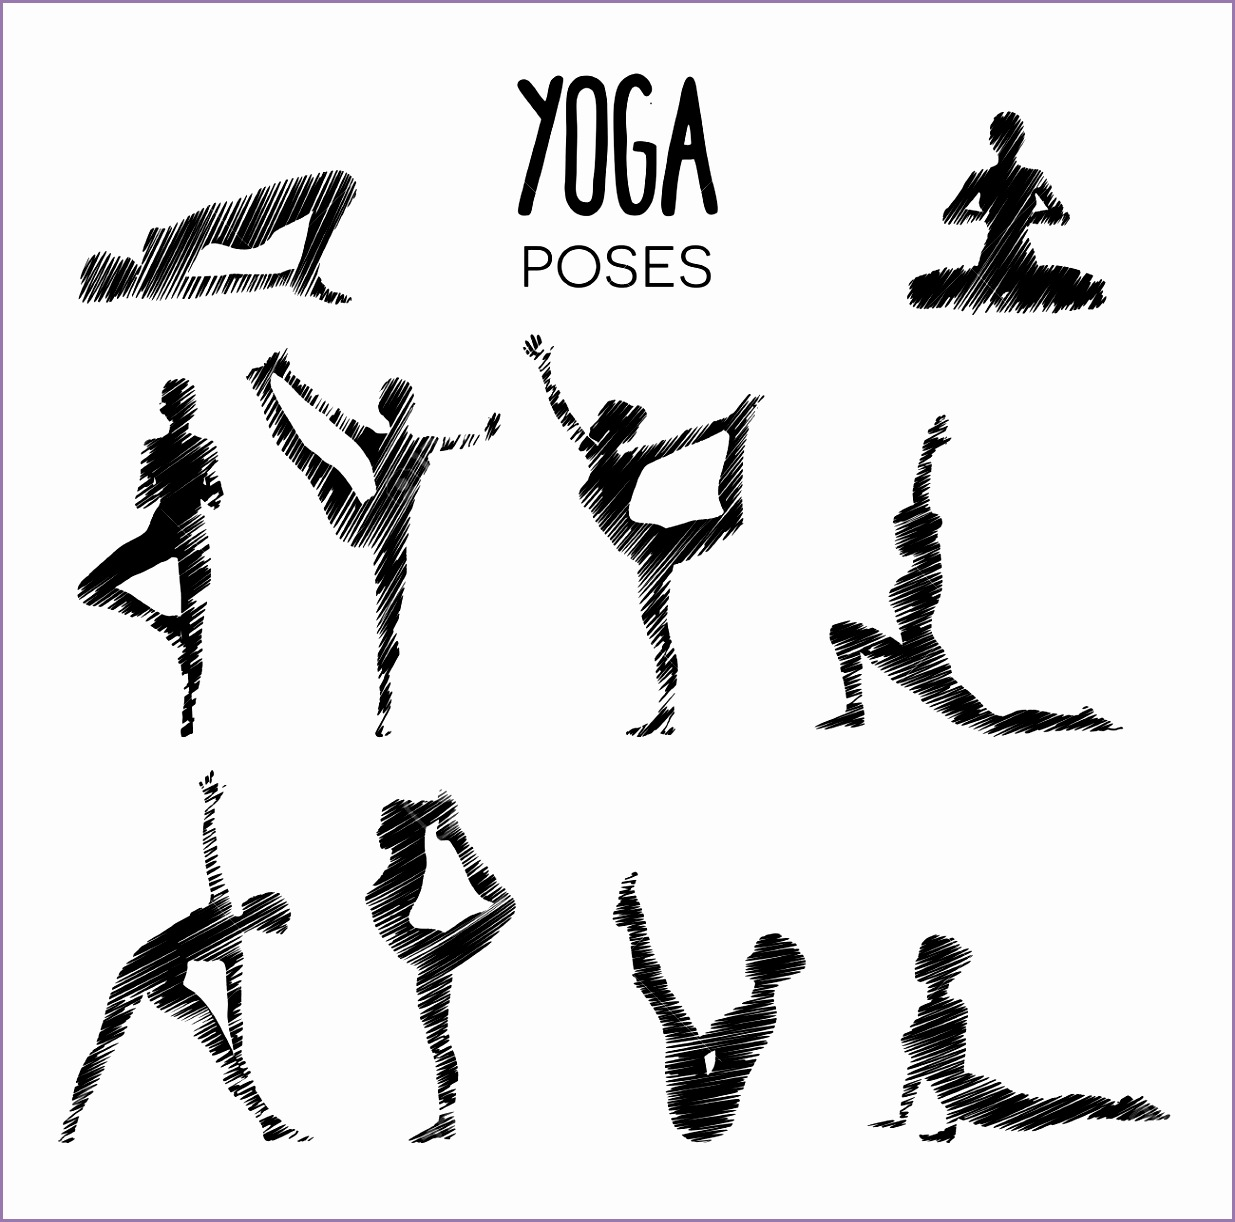 Set of various yoga poses looking like a pencil drawing sketch Stock Vector